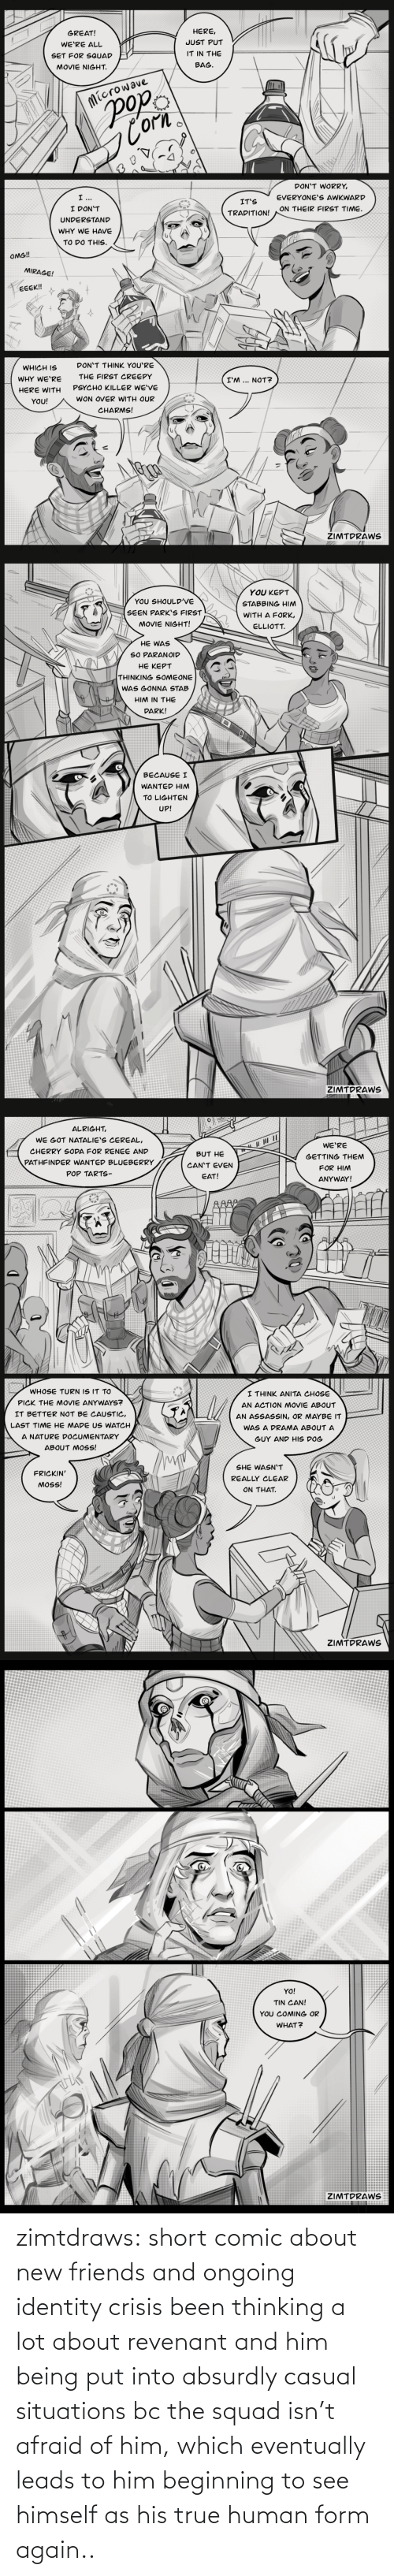 Squad: zimtdraws:  short comic about new friends and ongoing identity crisis  been thinking a lot about revenant and him being put into absurdly casual situations bc the squad isn't afraid of him, which eventually leads to him beginning to see himself as his true human form again..